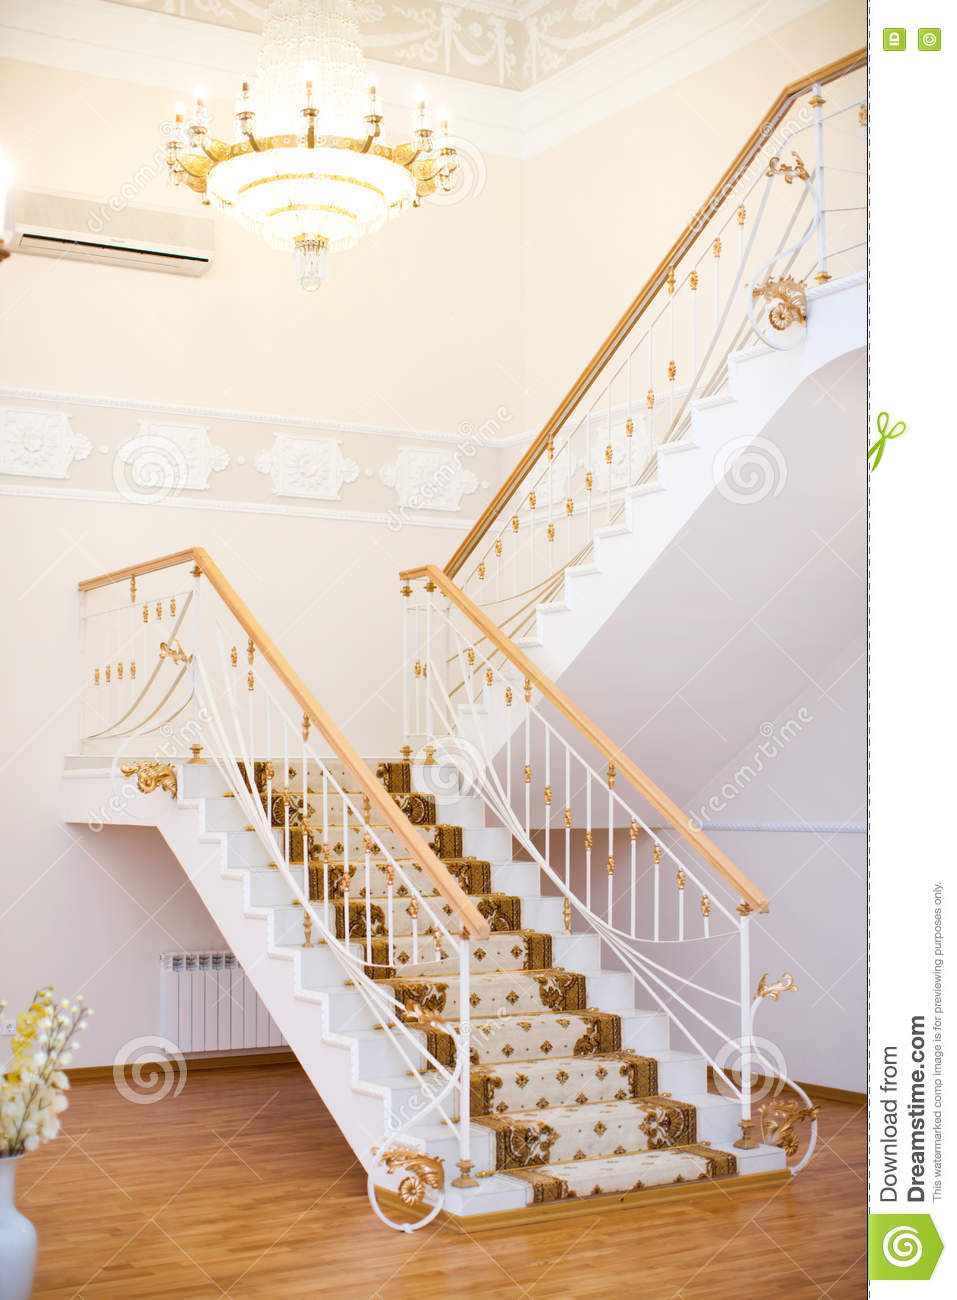 Huge hall with stairs